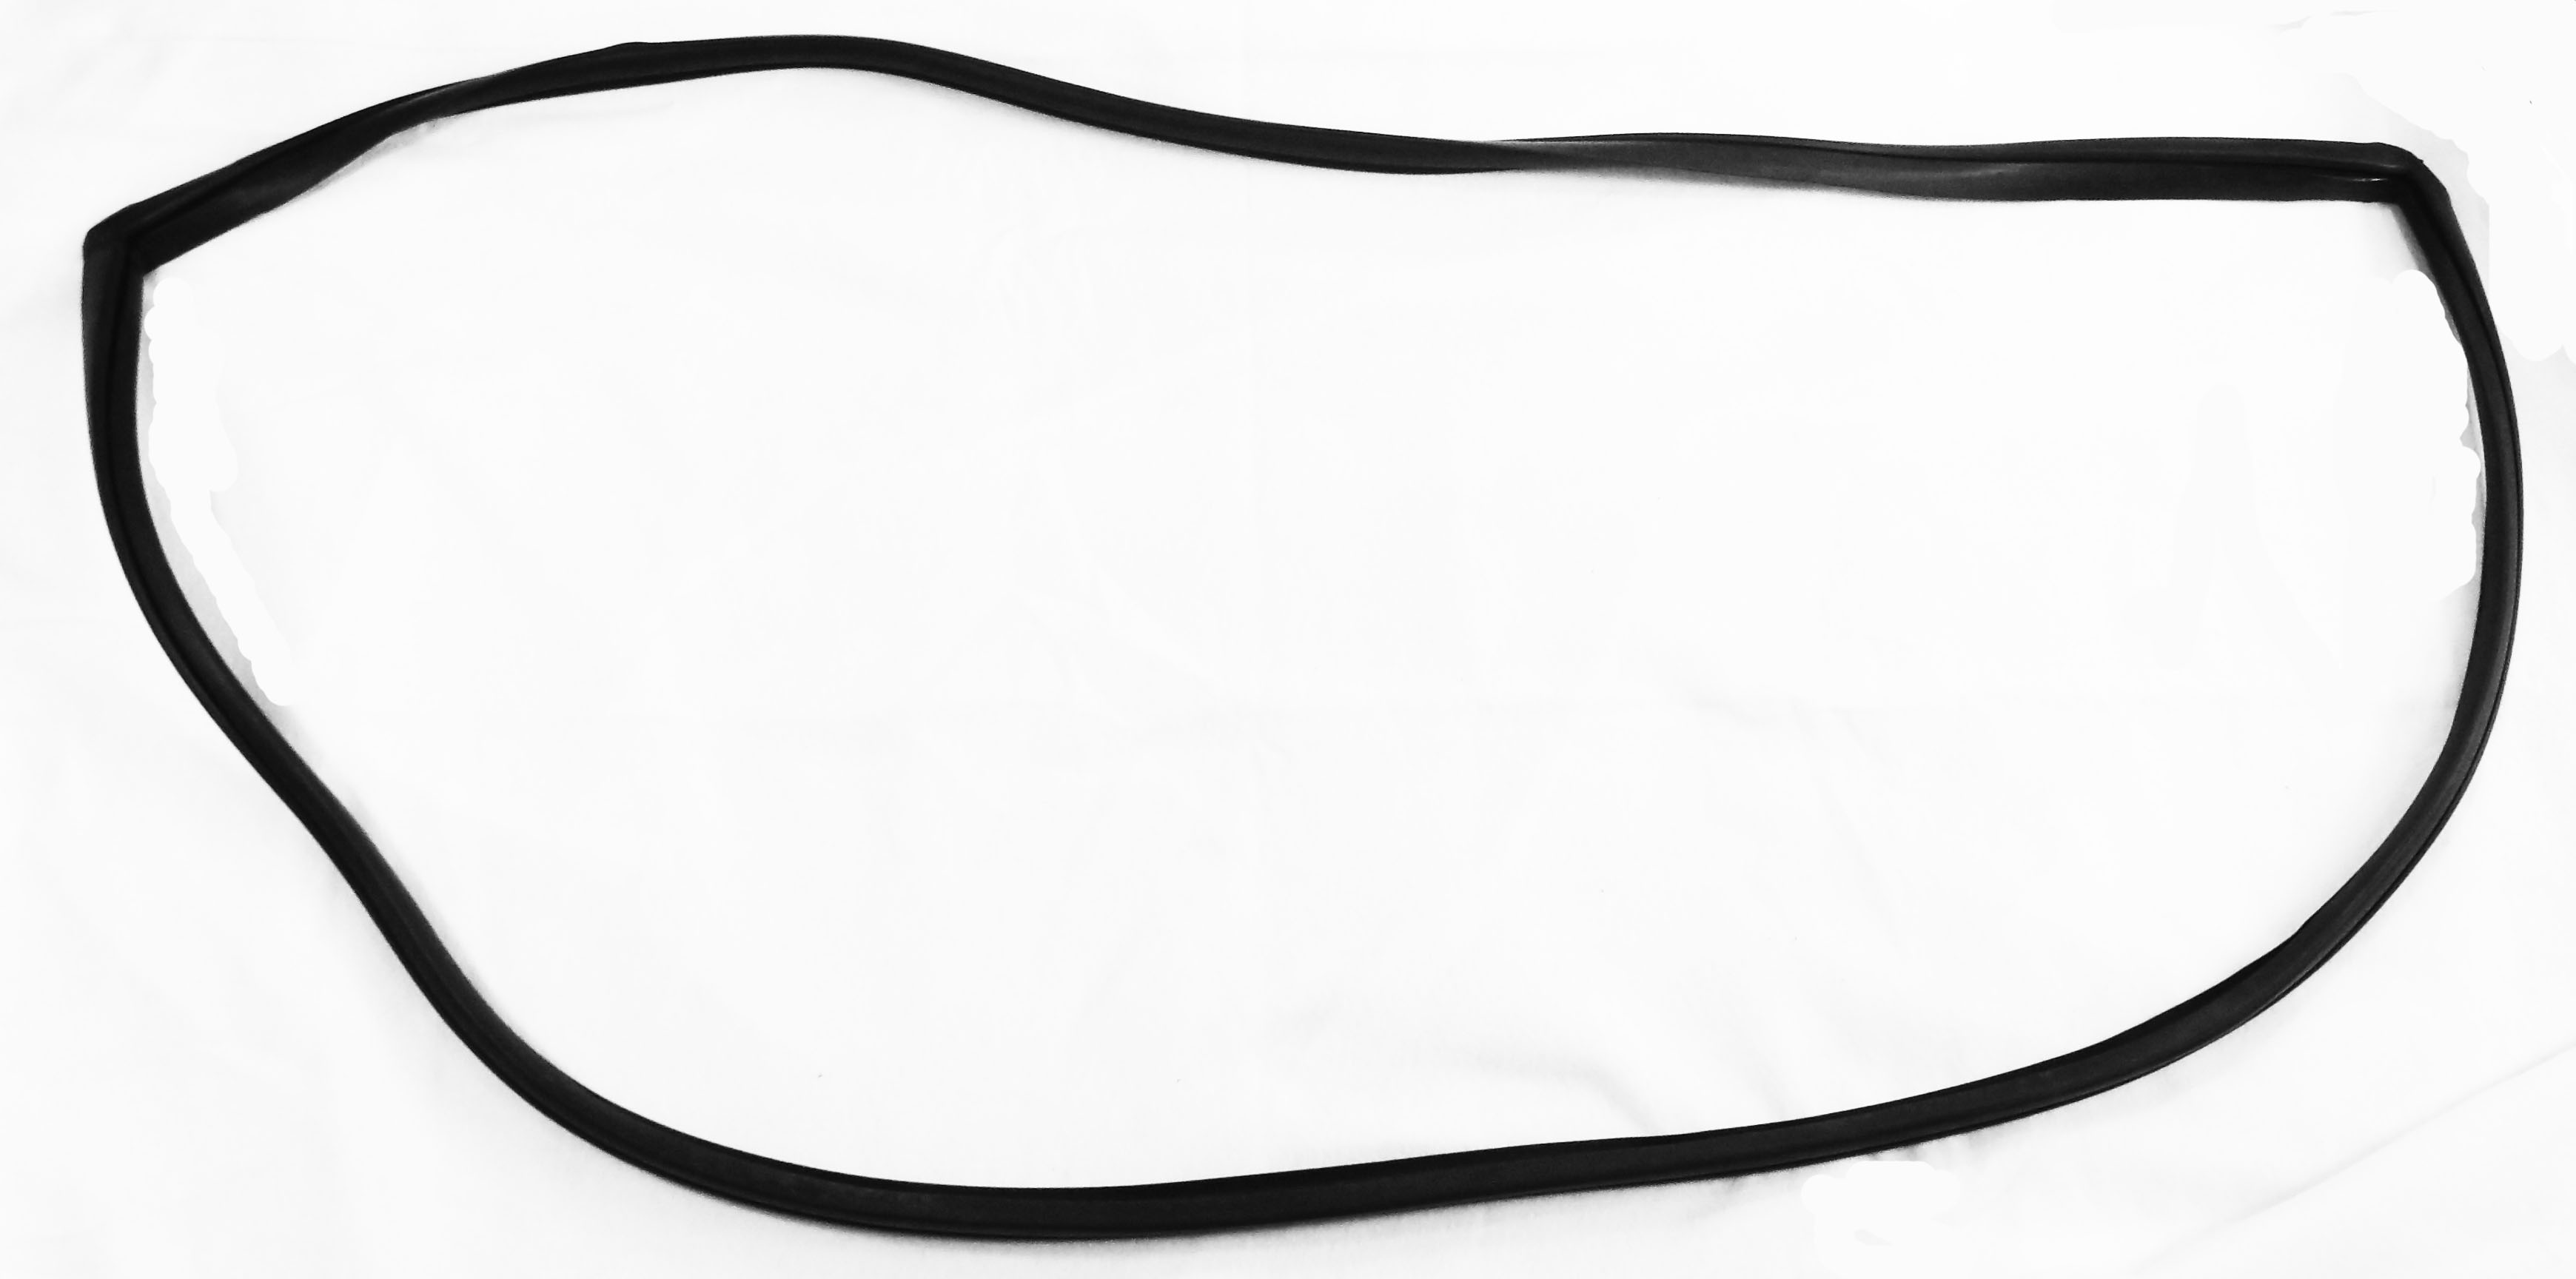 Rear Glass Channel For Chevy 2 Or 4 Door Sedan